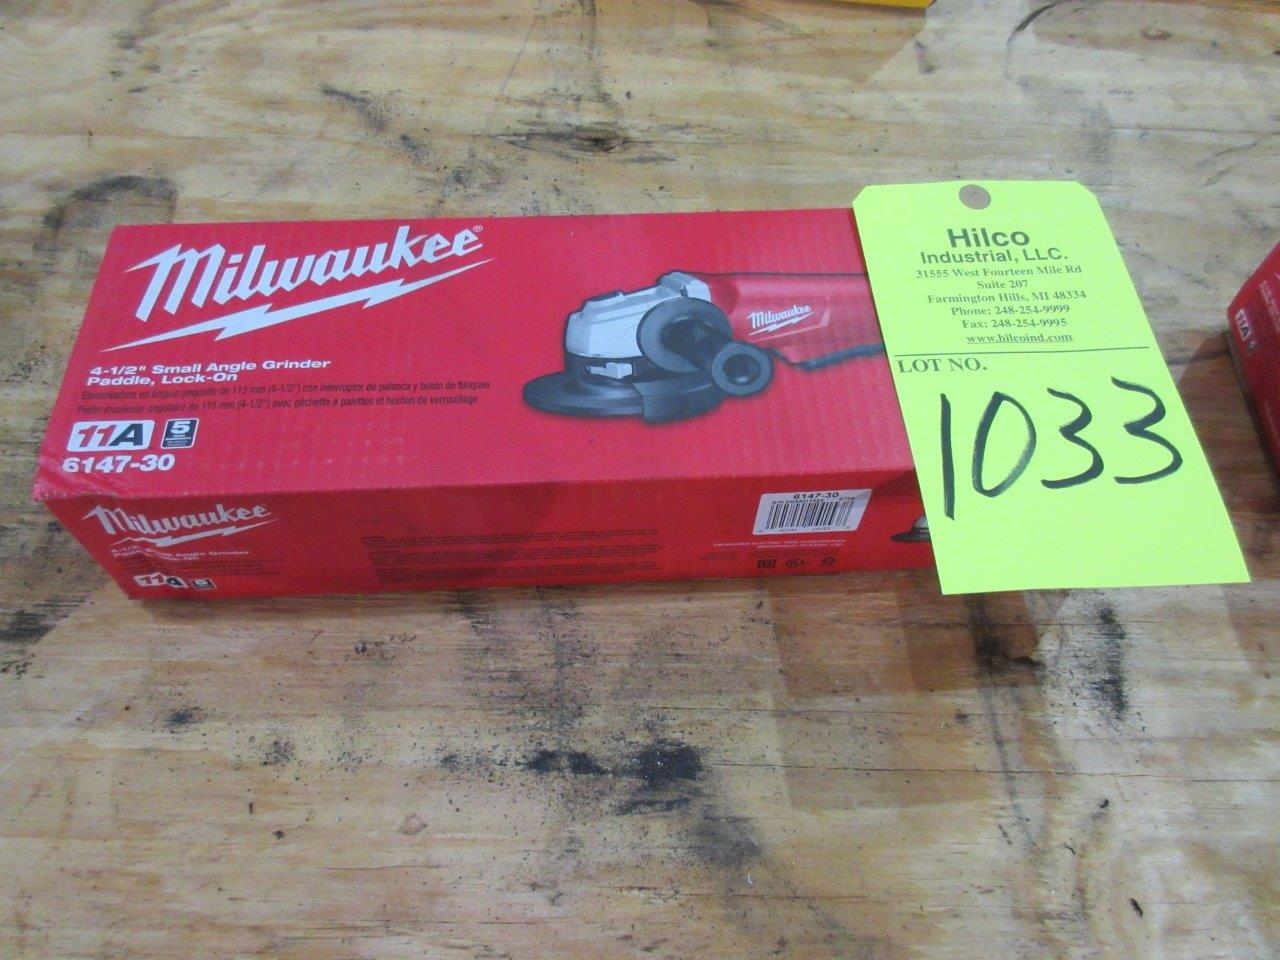 "Lot 1033 - Milwaukee Cat # 6147-30 New 4 1/2"" Angle Grinder"